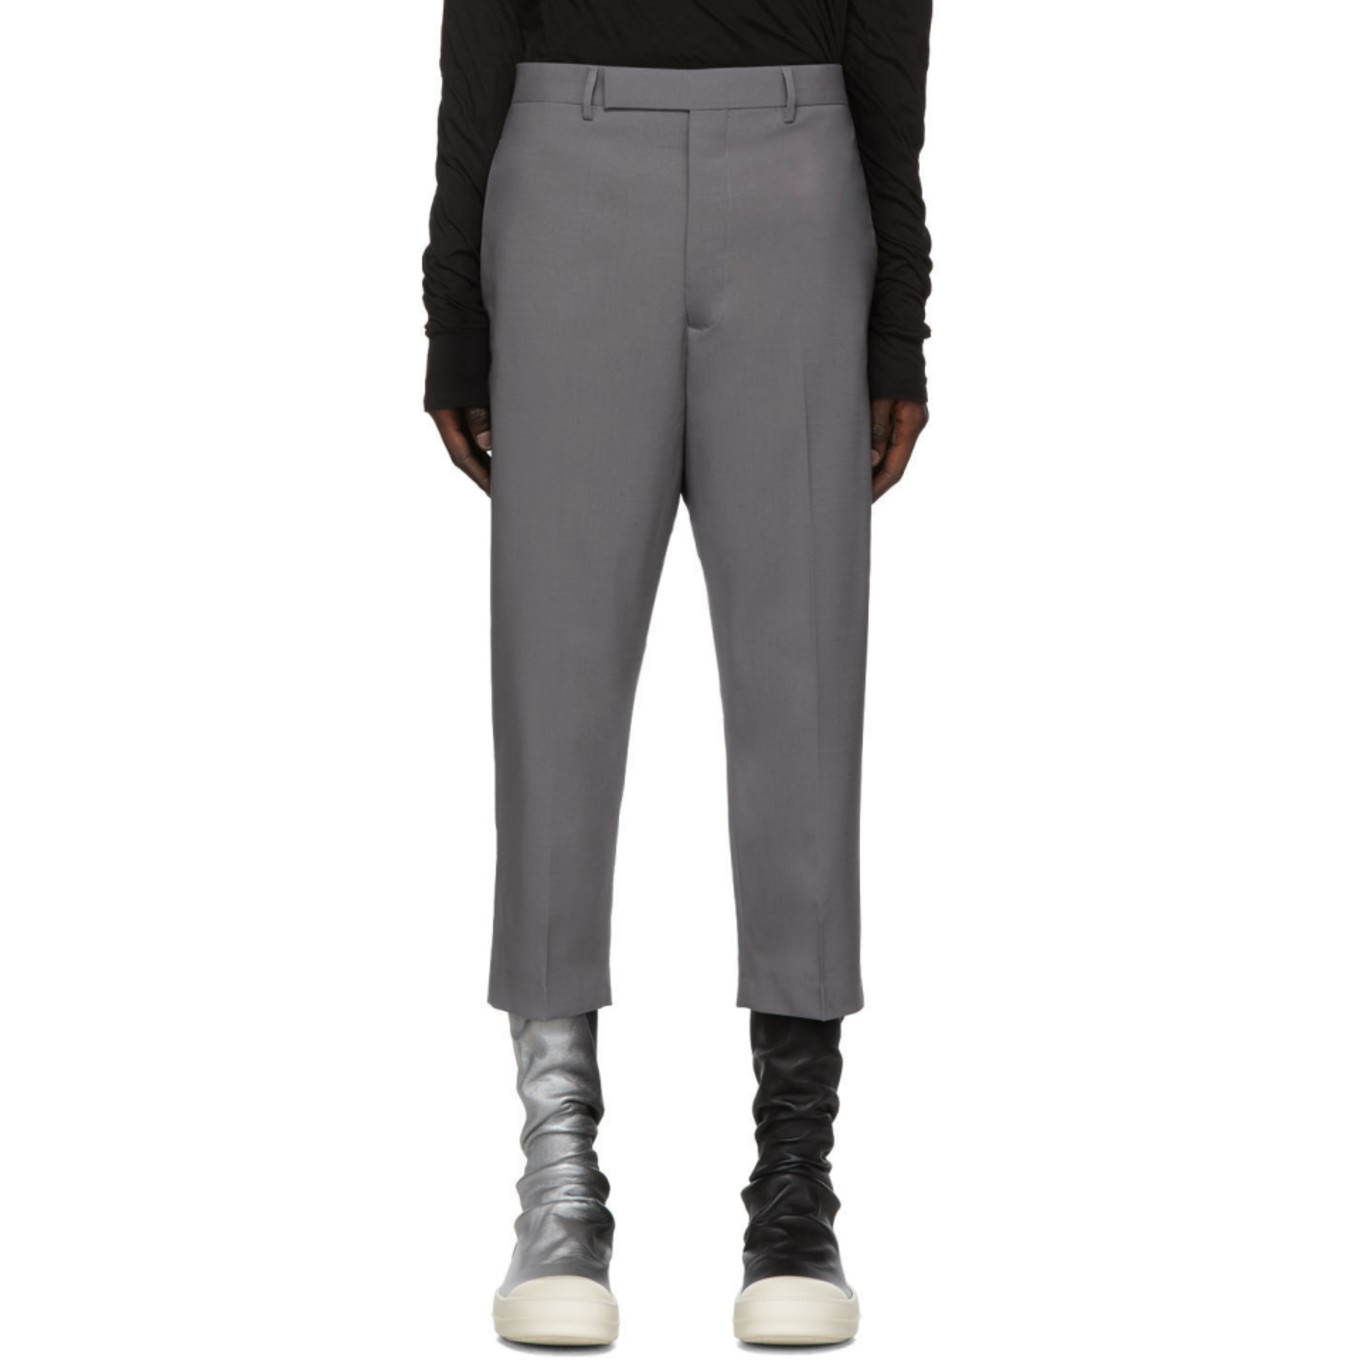 Grey Cropped Astaires Trousers by Rick Owens